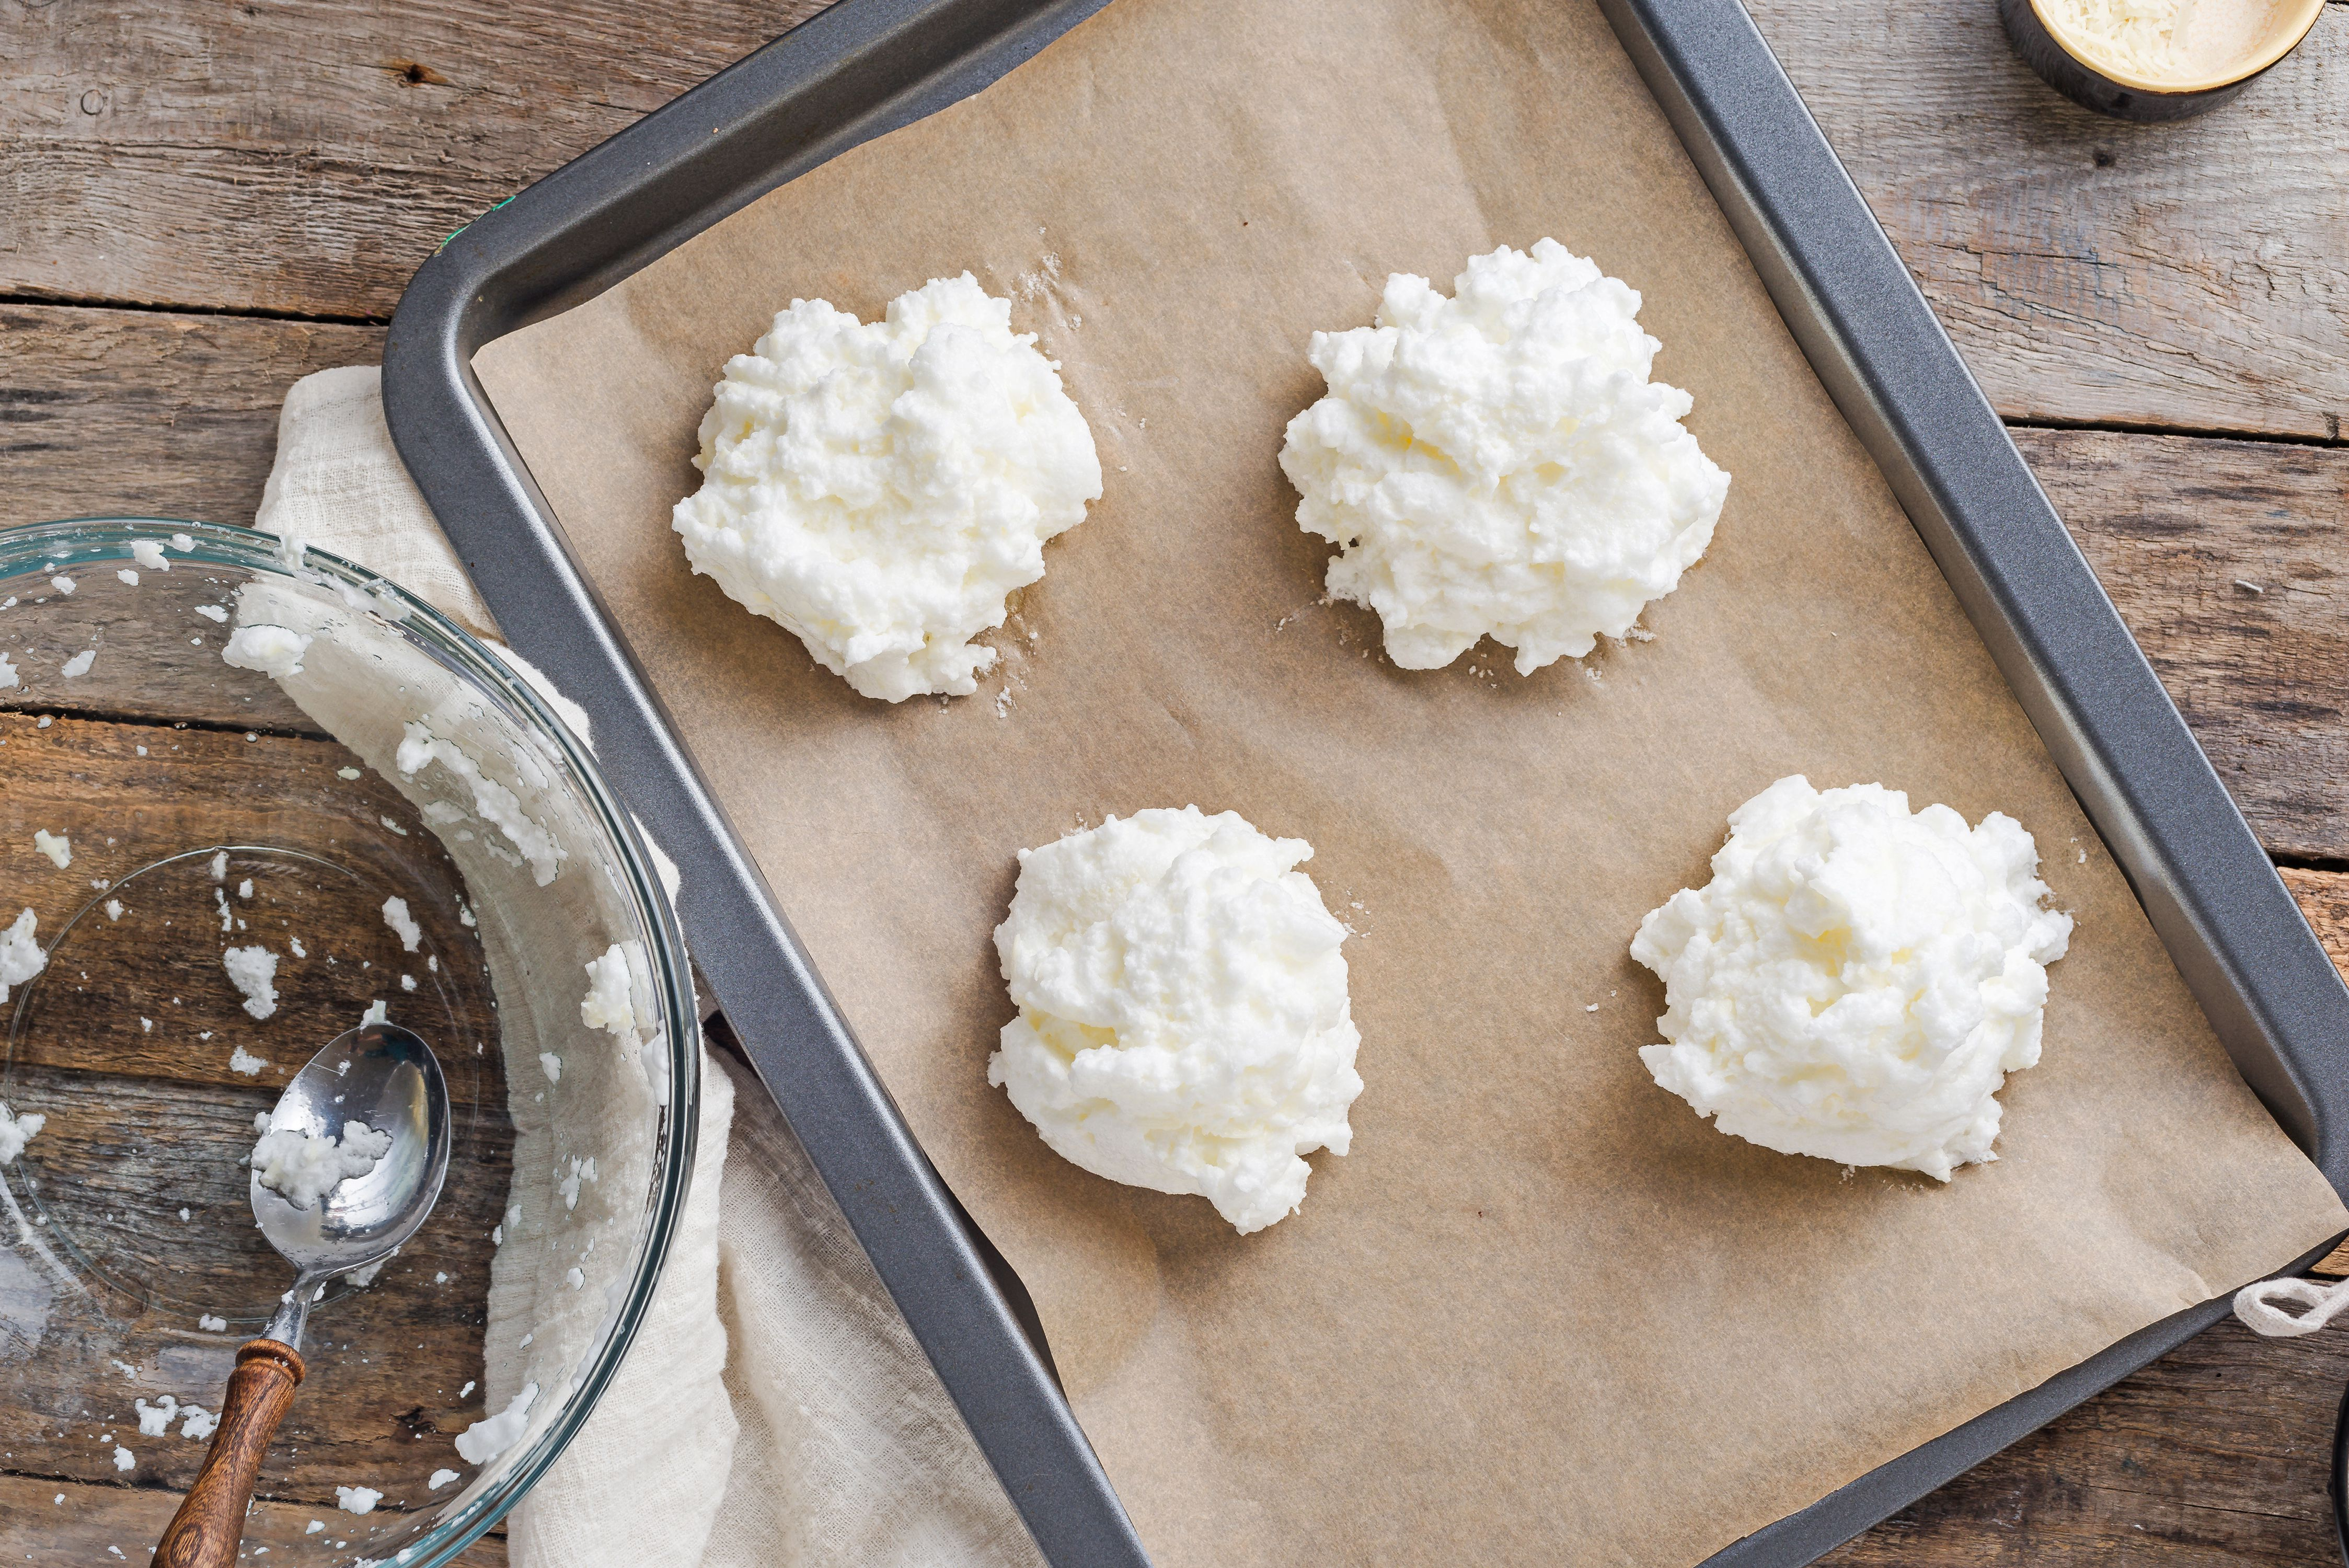 Spoon the egg whites in mounds